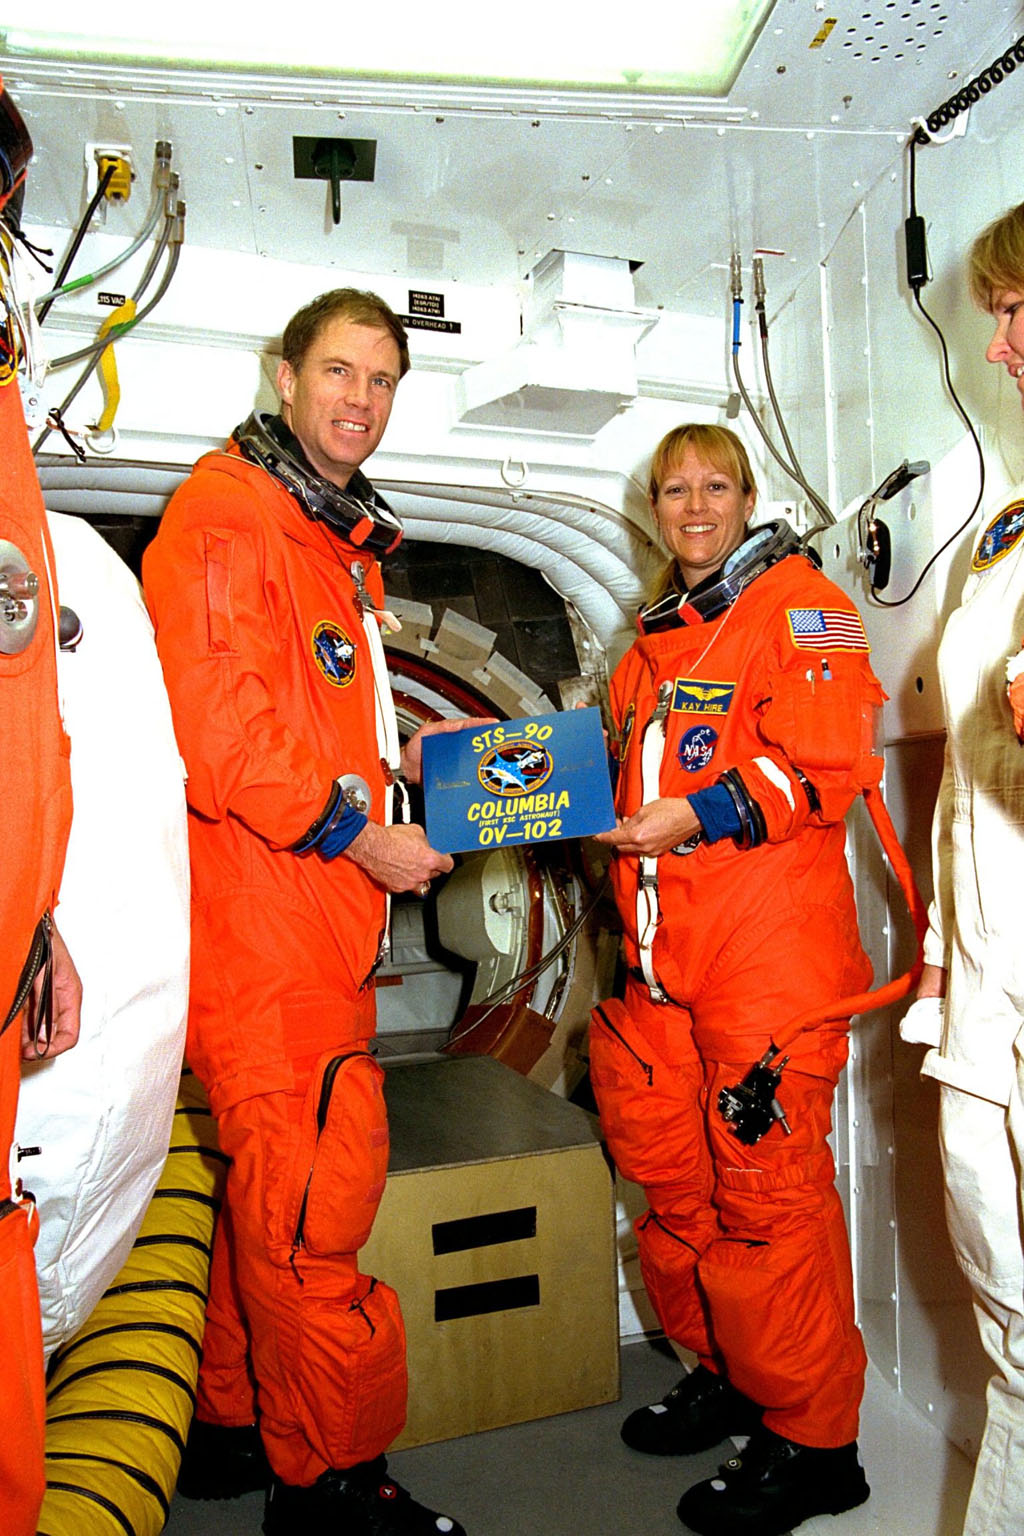 The crew of STS-90 participate in Terminal Countdown Demonstration Test (TCDT) activities at KSC's Launch Pad 39B. The TCDT is held at KSC prior to each Space Shuttle flight to provide crews with the opportunity to participate in simulated countdown activities. Here, STS-90 Commander Richard Searfoss and Mission Specialist Kathryn (Kay) Hire hold the mission patch with orbiter information. Columbia is targeted for launch of STS-90 on April 16 at 2:19 p.m. EDT and will be the second mission of 1998. The mission is scheduled to last nearly 17 days